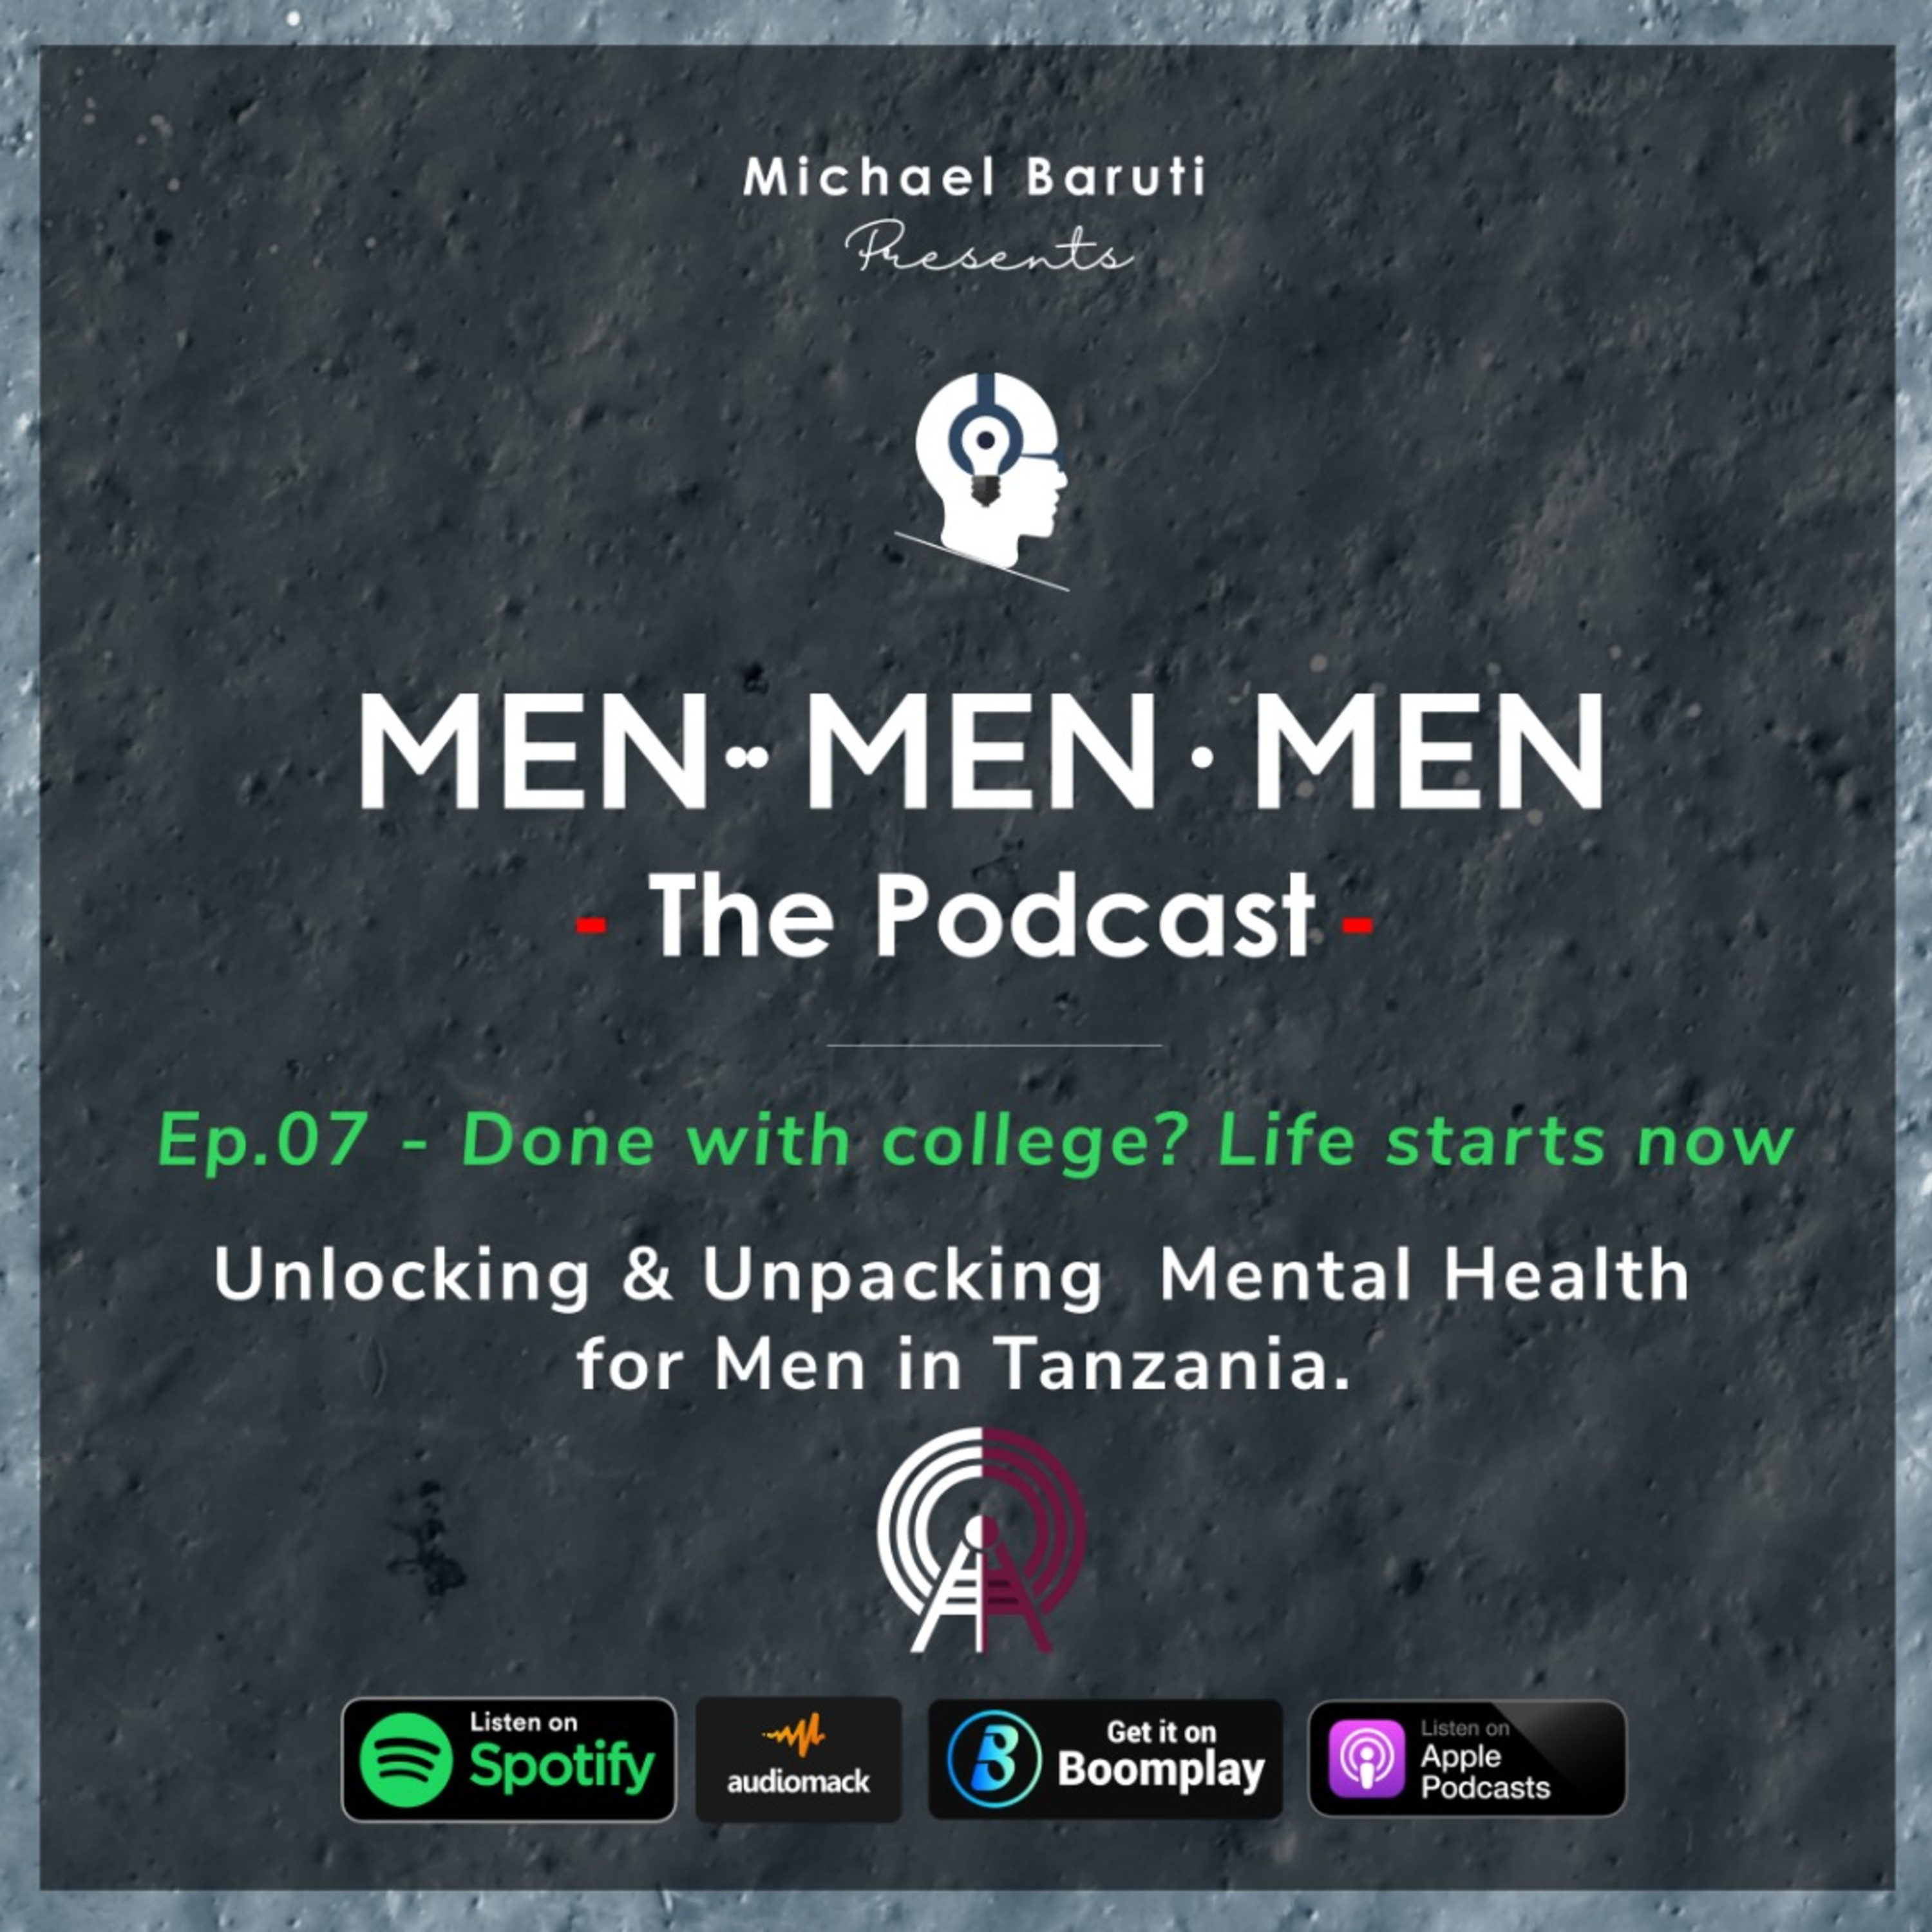 Men The Podcast - Ep 7 - Done with College? Life starts now with Lameck Lawrence